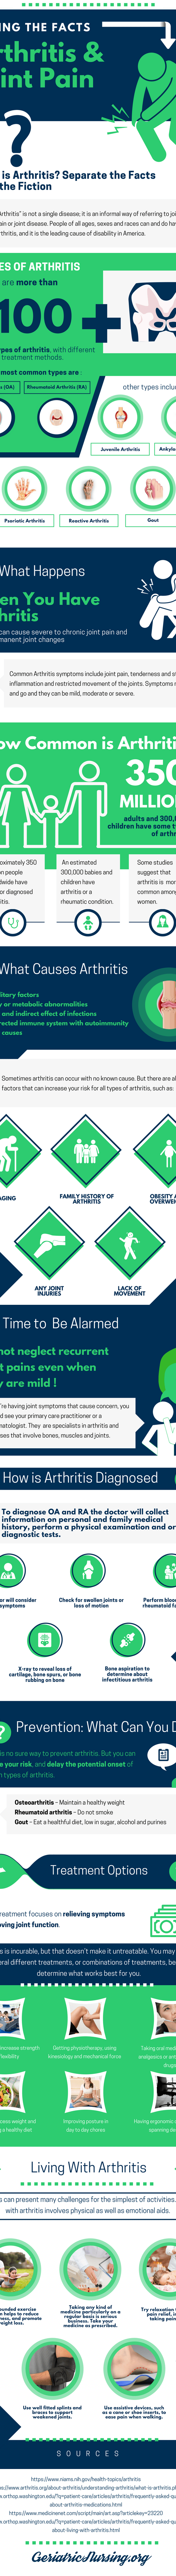 Arthritis Facts - An Infographic